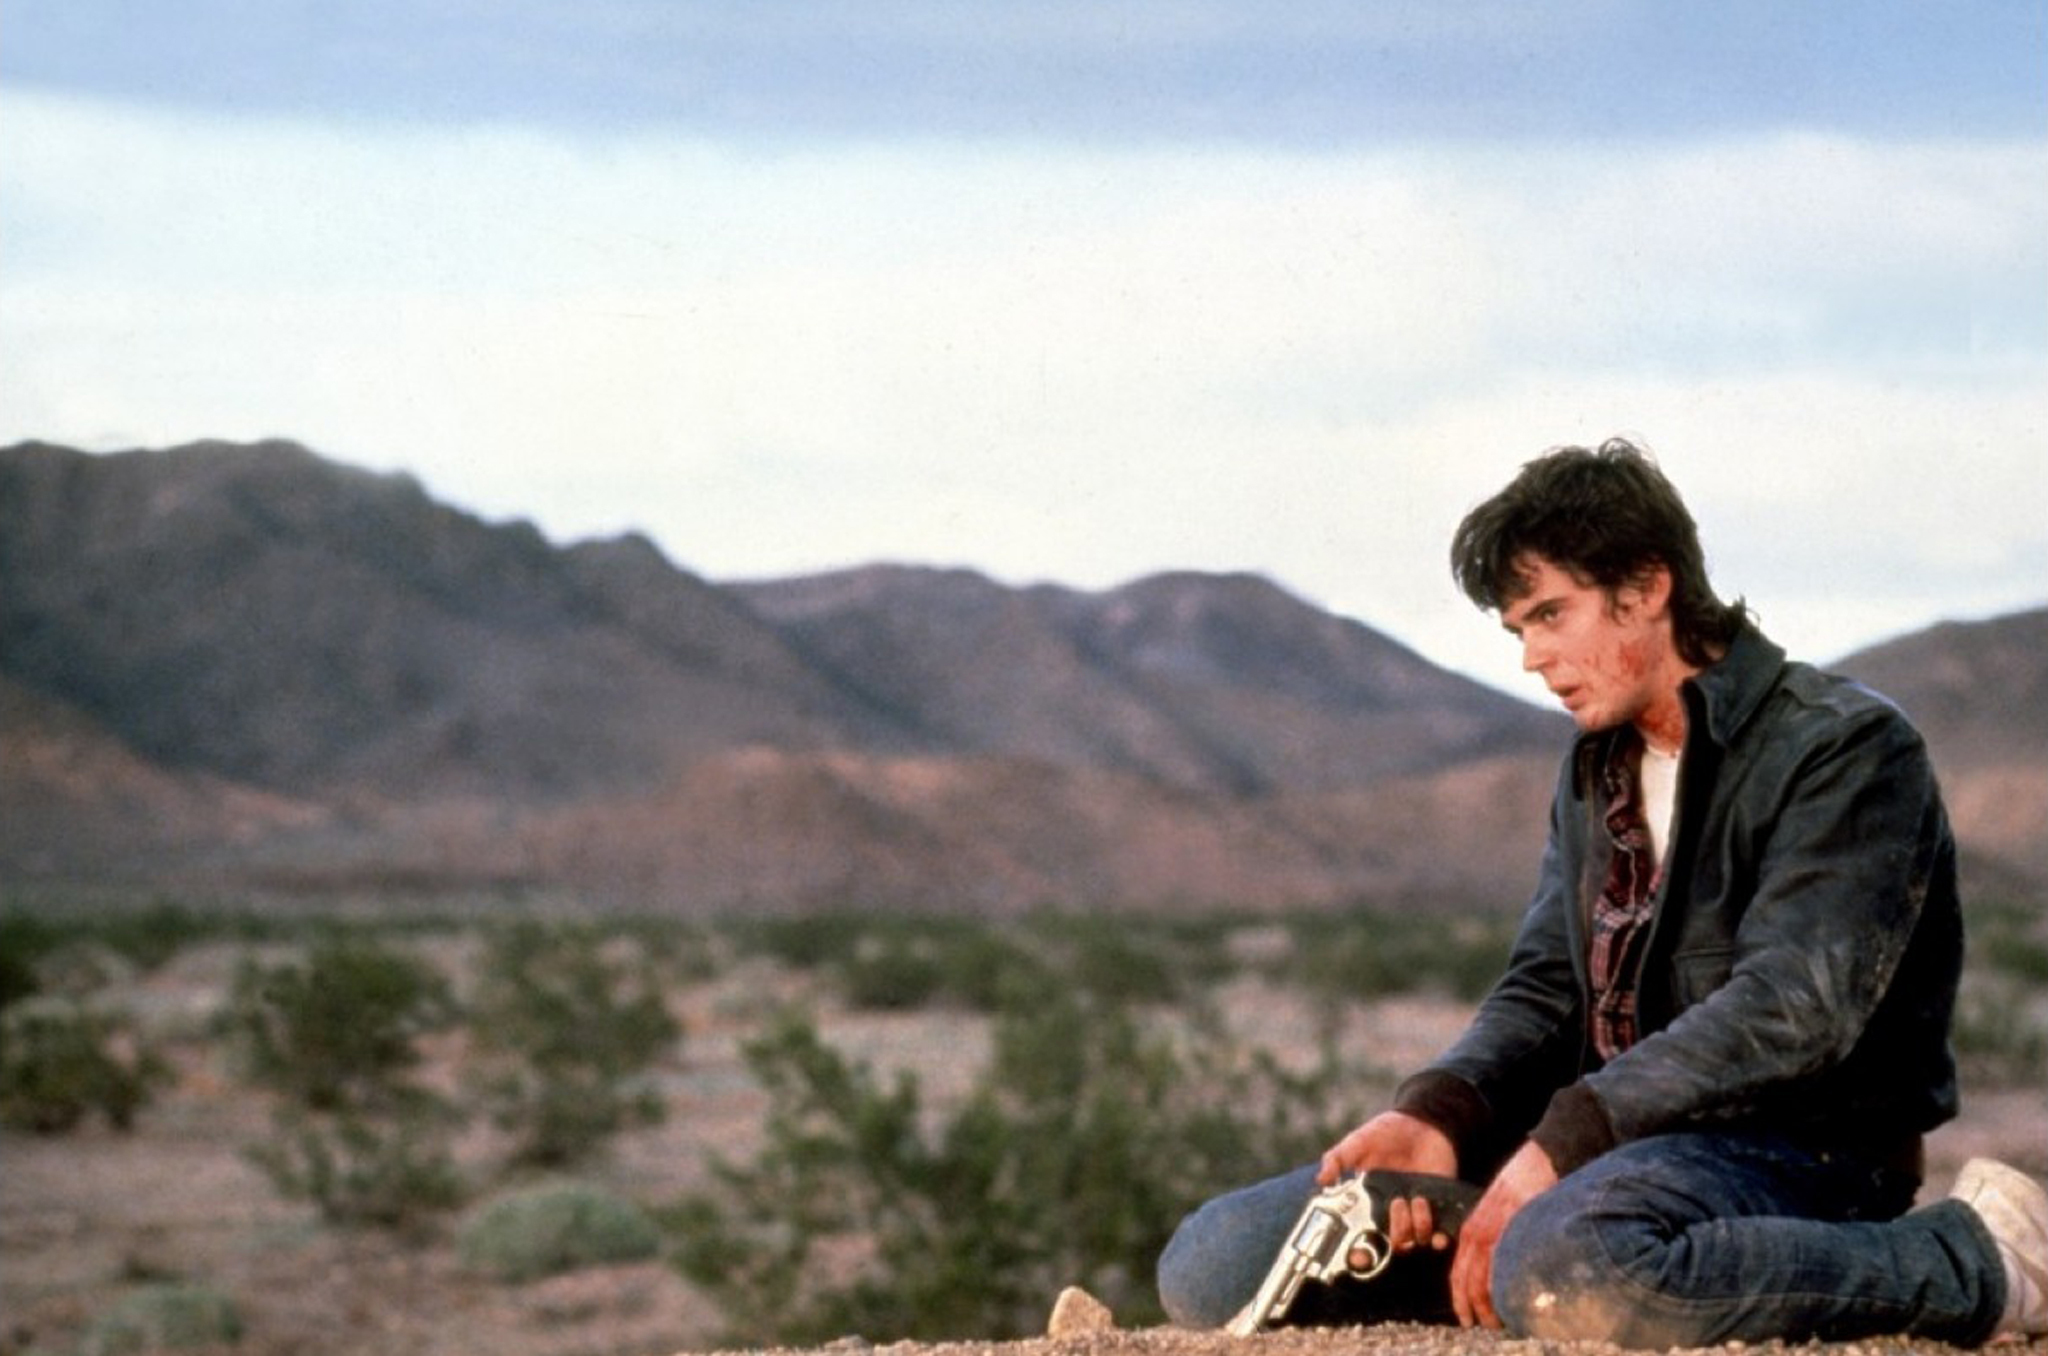 The Hitcher, terrifying movie moments, horror movies